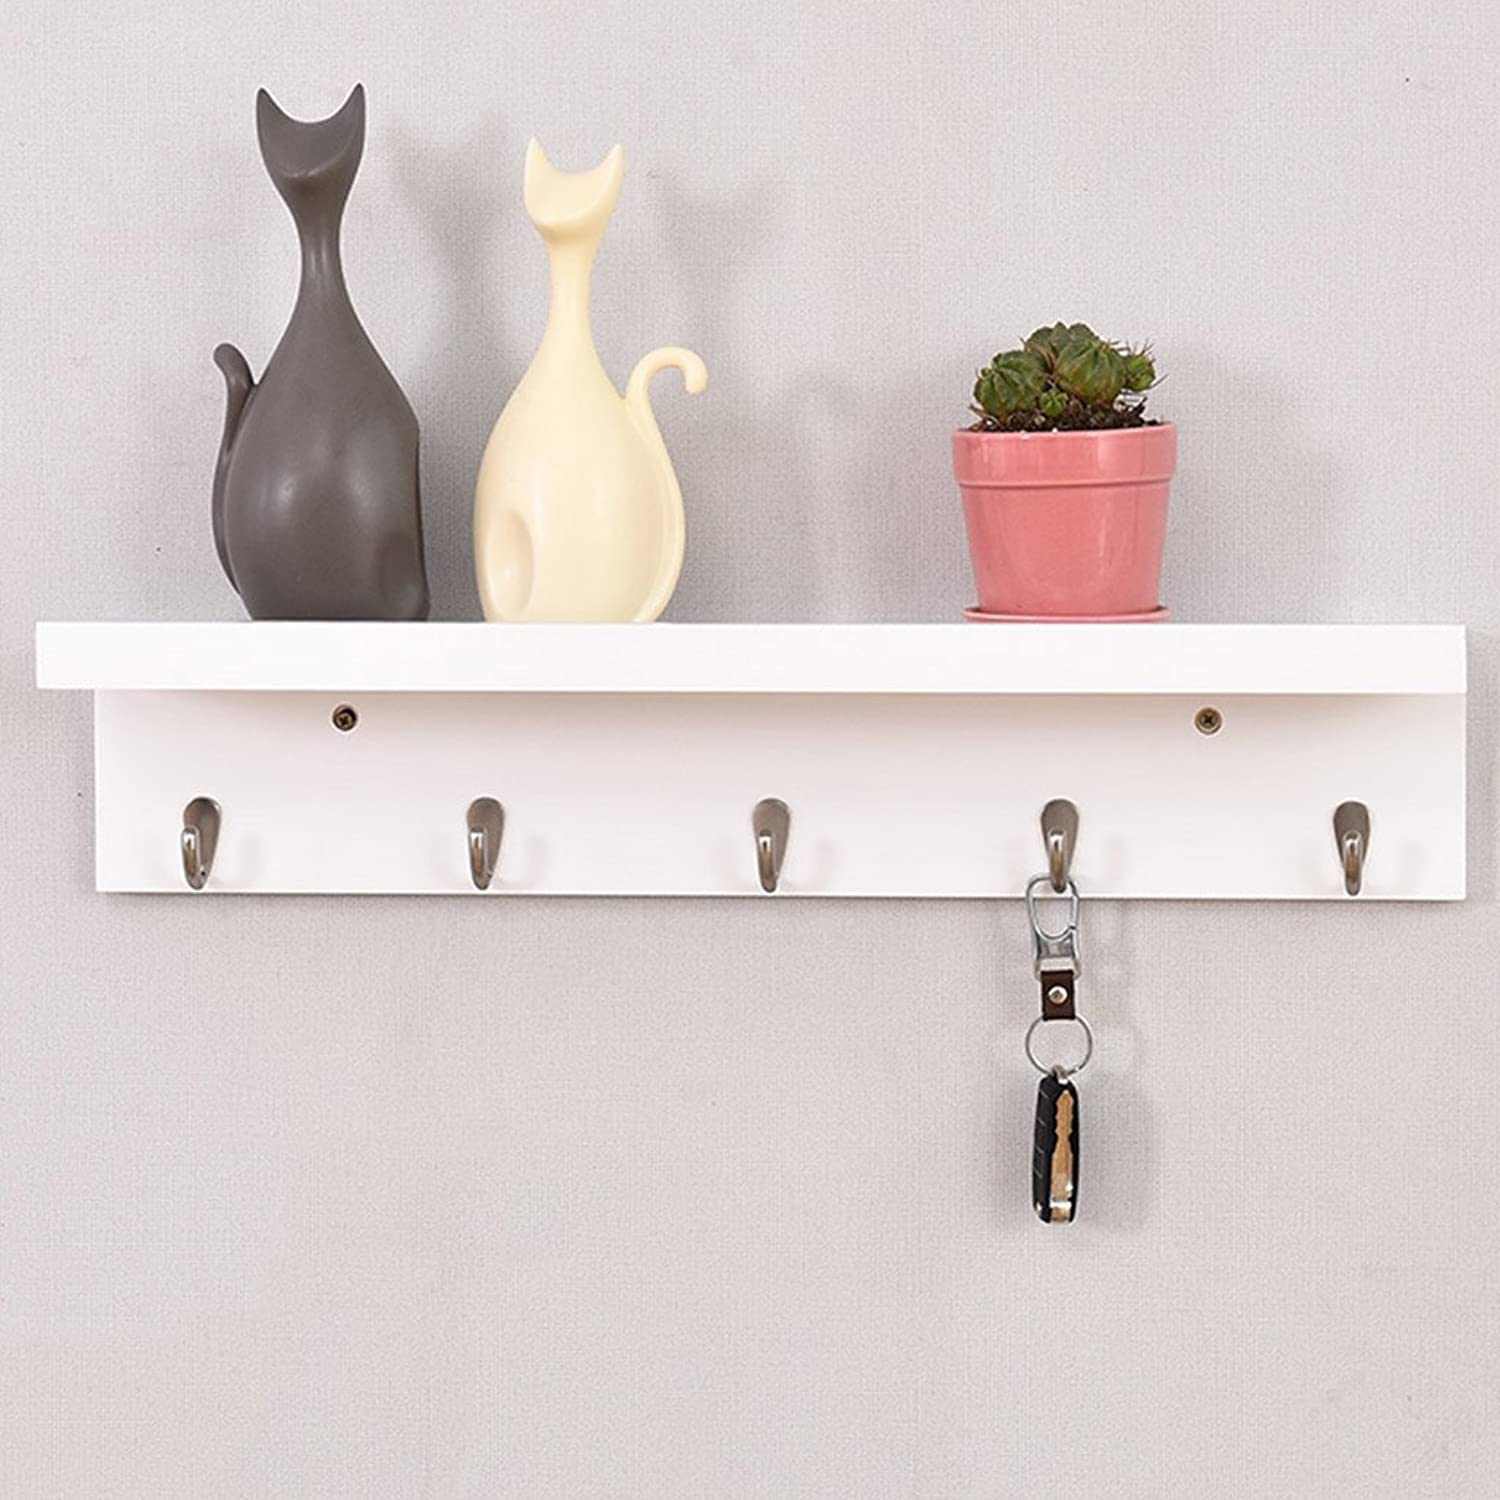 Solid Wood Wall Hanging Clothes Hat Scarves Rack Bedroom Bathroom Coat & Hat Stand with Hooks Creative Household Storage Organizer Shelves Size Optional (Size   61  13  13cm)